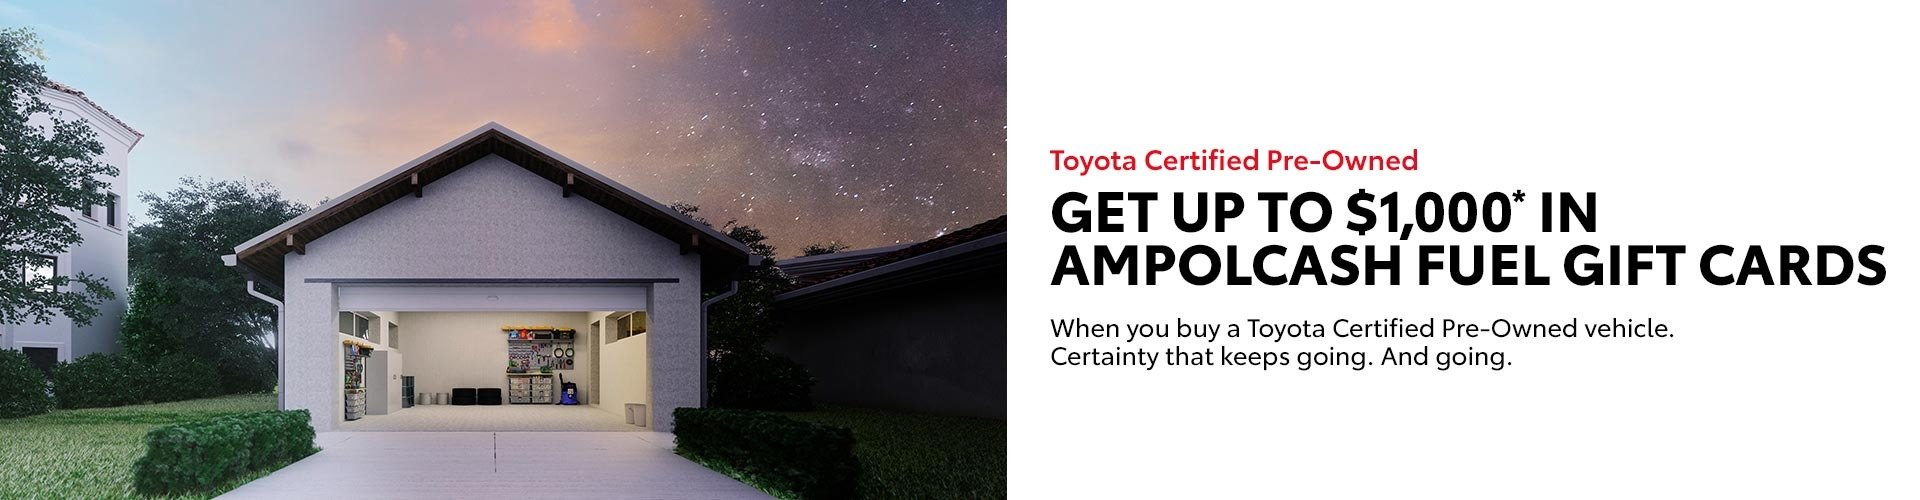 Mansfield Toyota - Ampol Fuel Gift Card